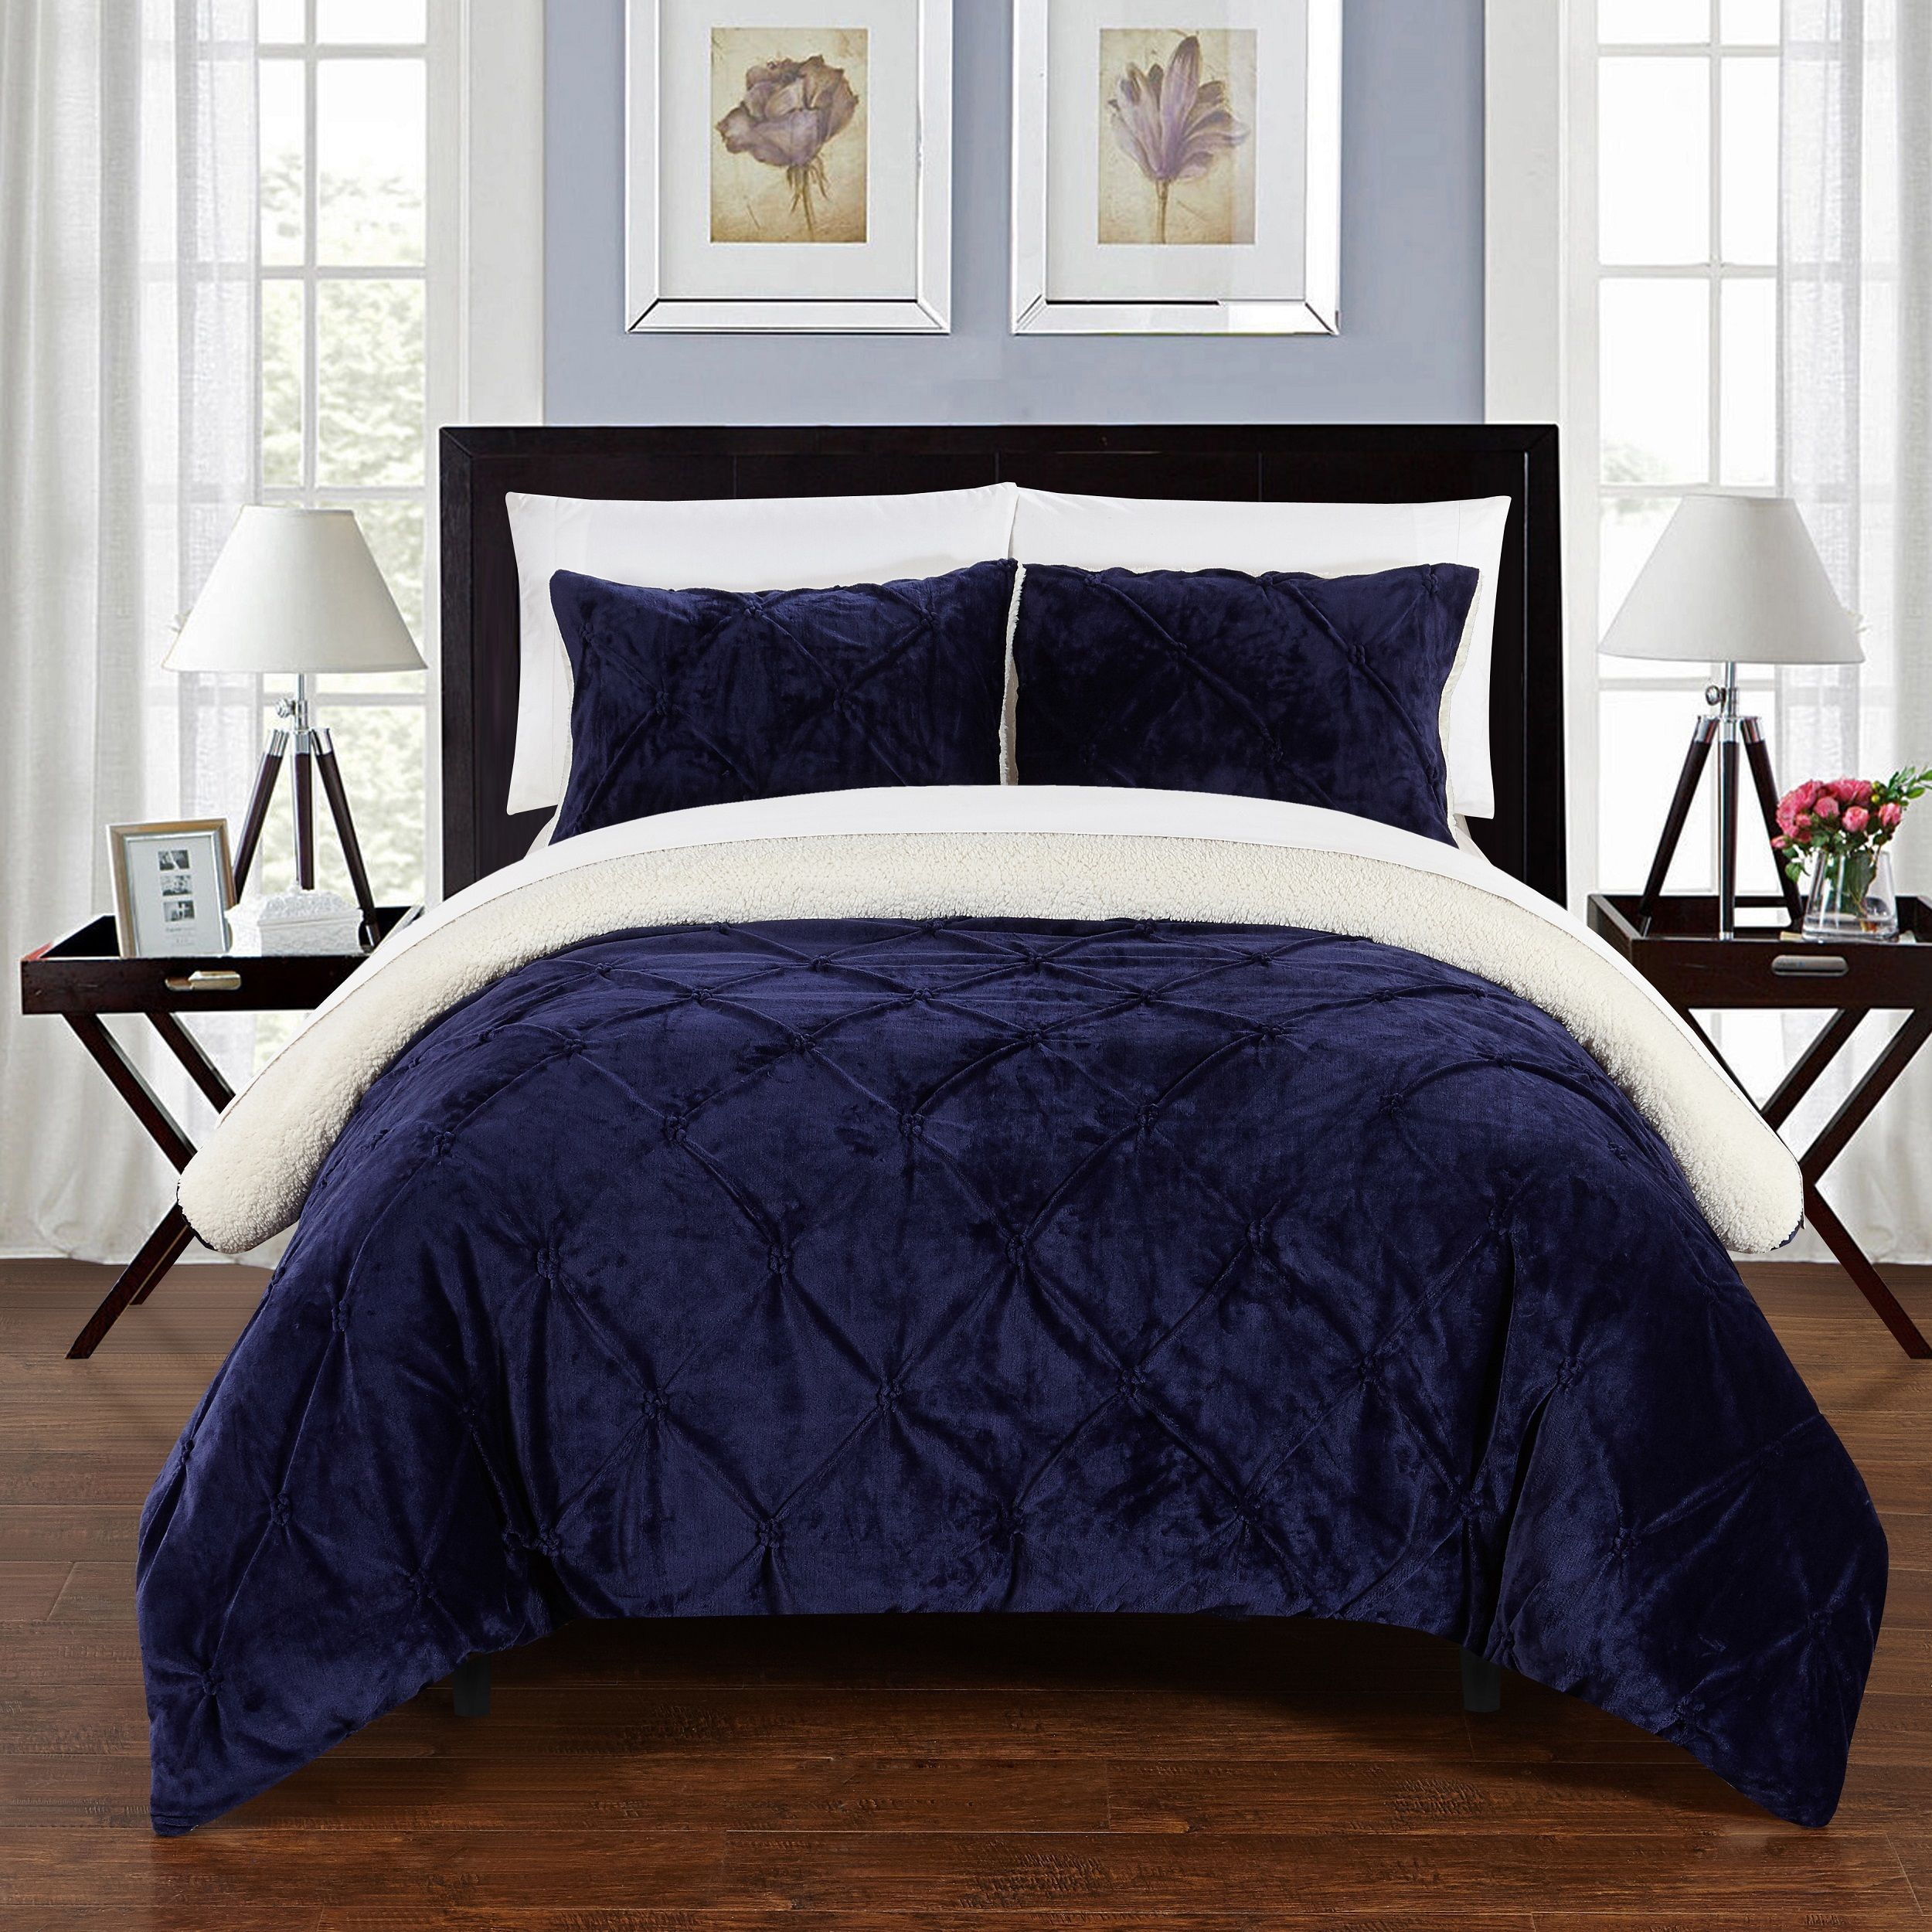 Chic Home 3 Piece Chiara Bed In A Bag Navy Comforter 3